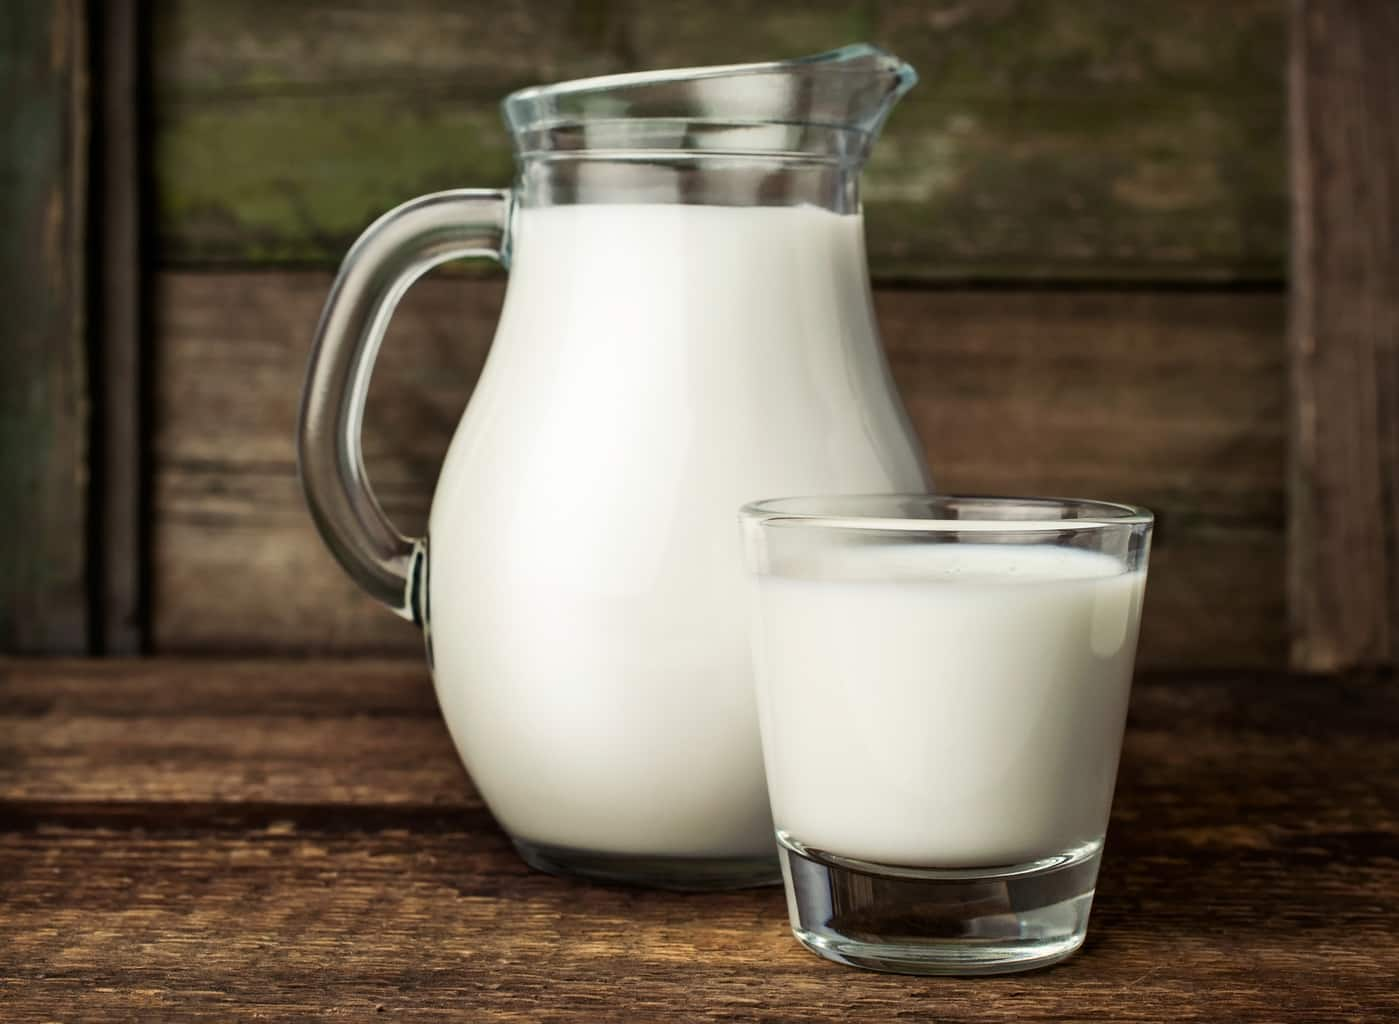 These proteins affect our mood: morphine-like compounds found in milk